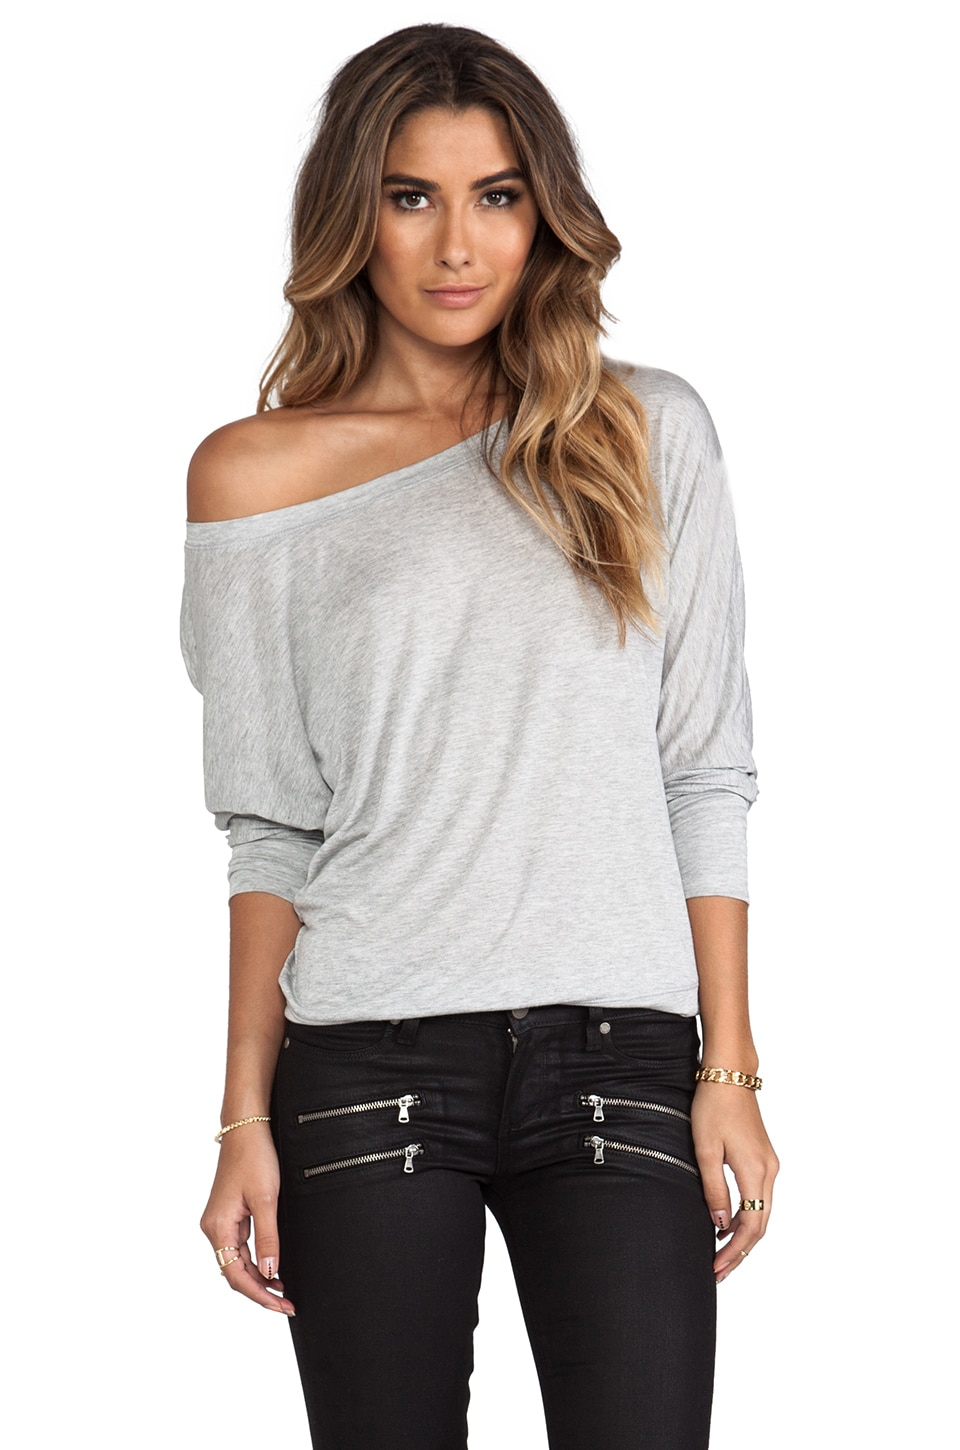 Lanston Boyfriend Sweatshirt in Heather Grey